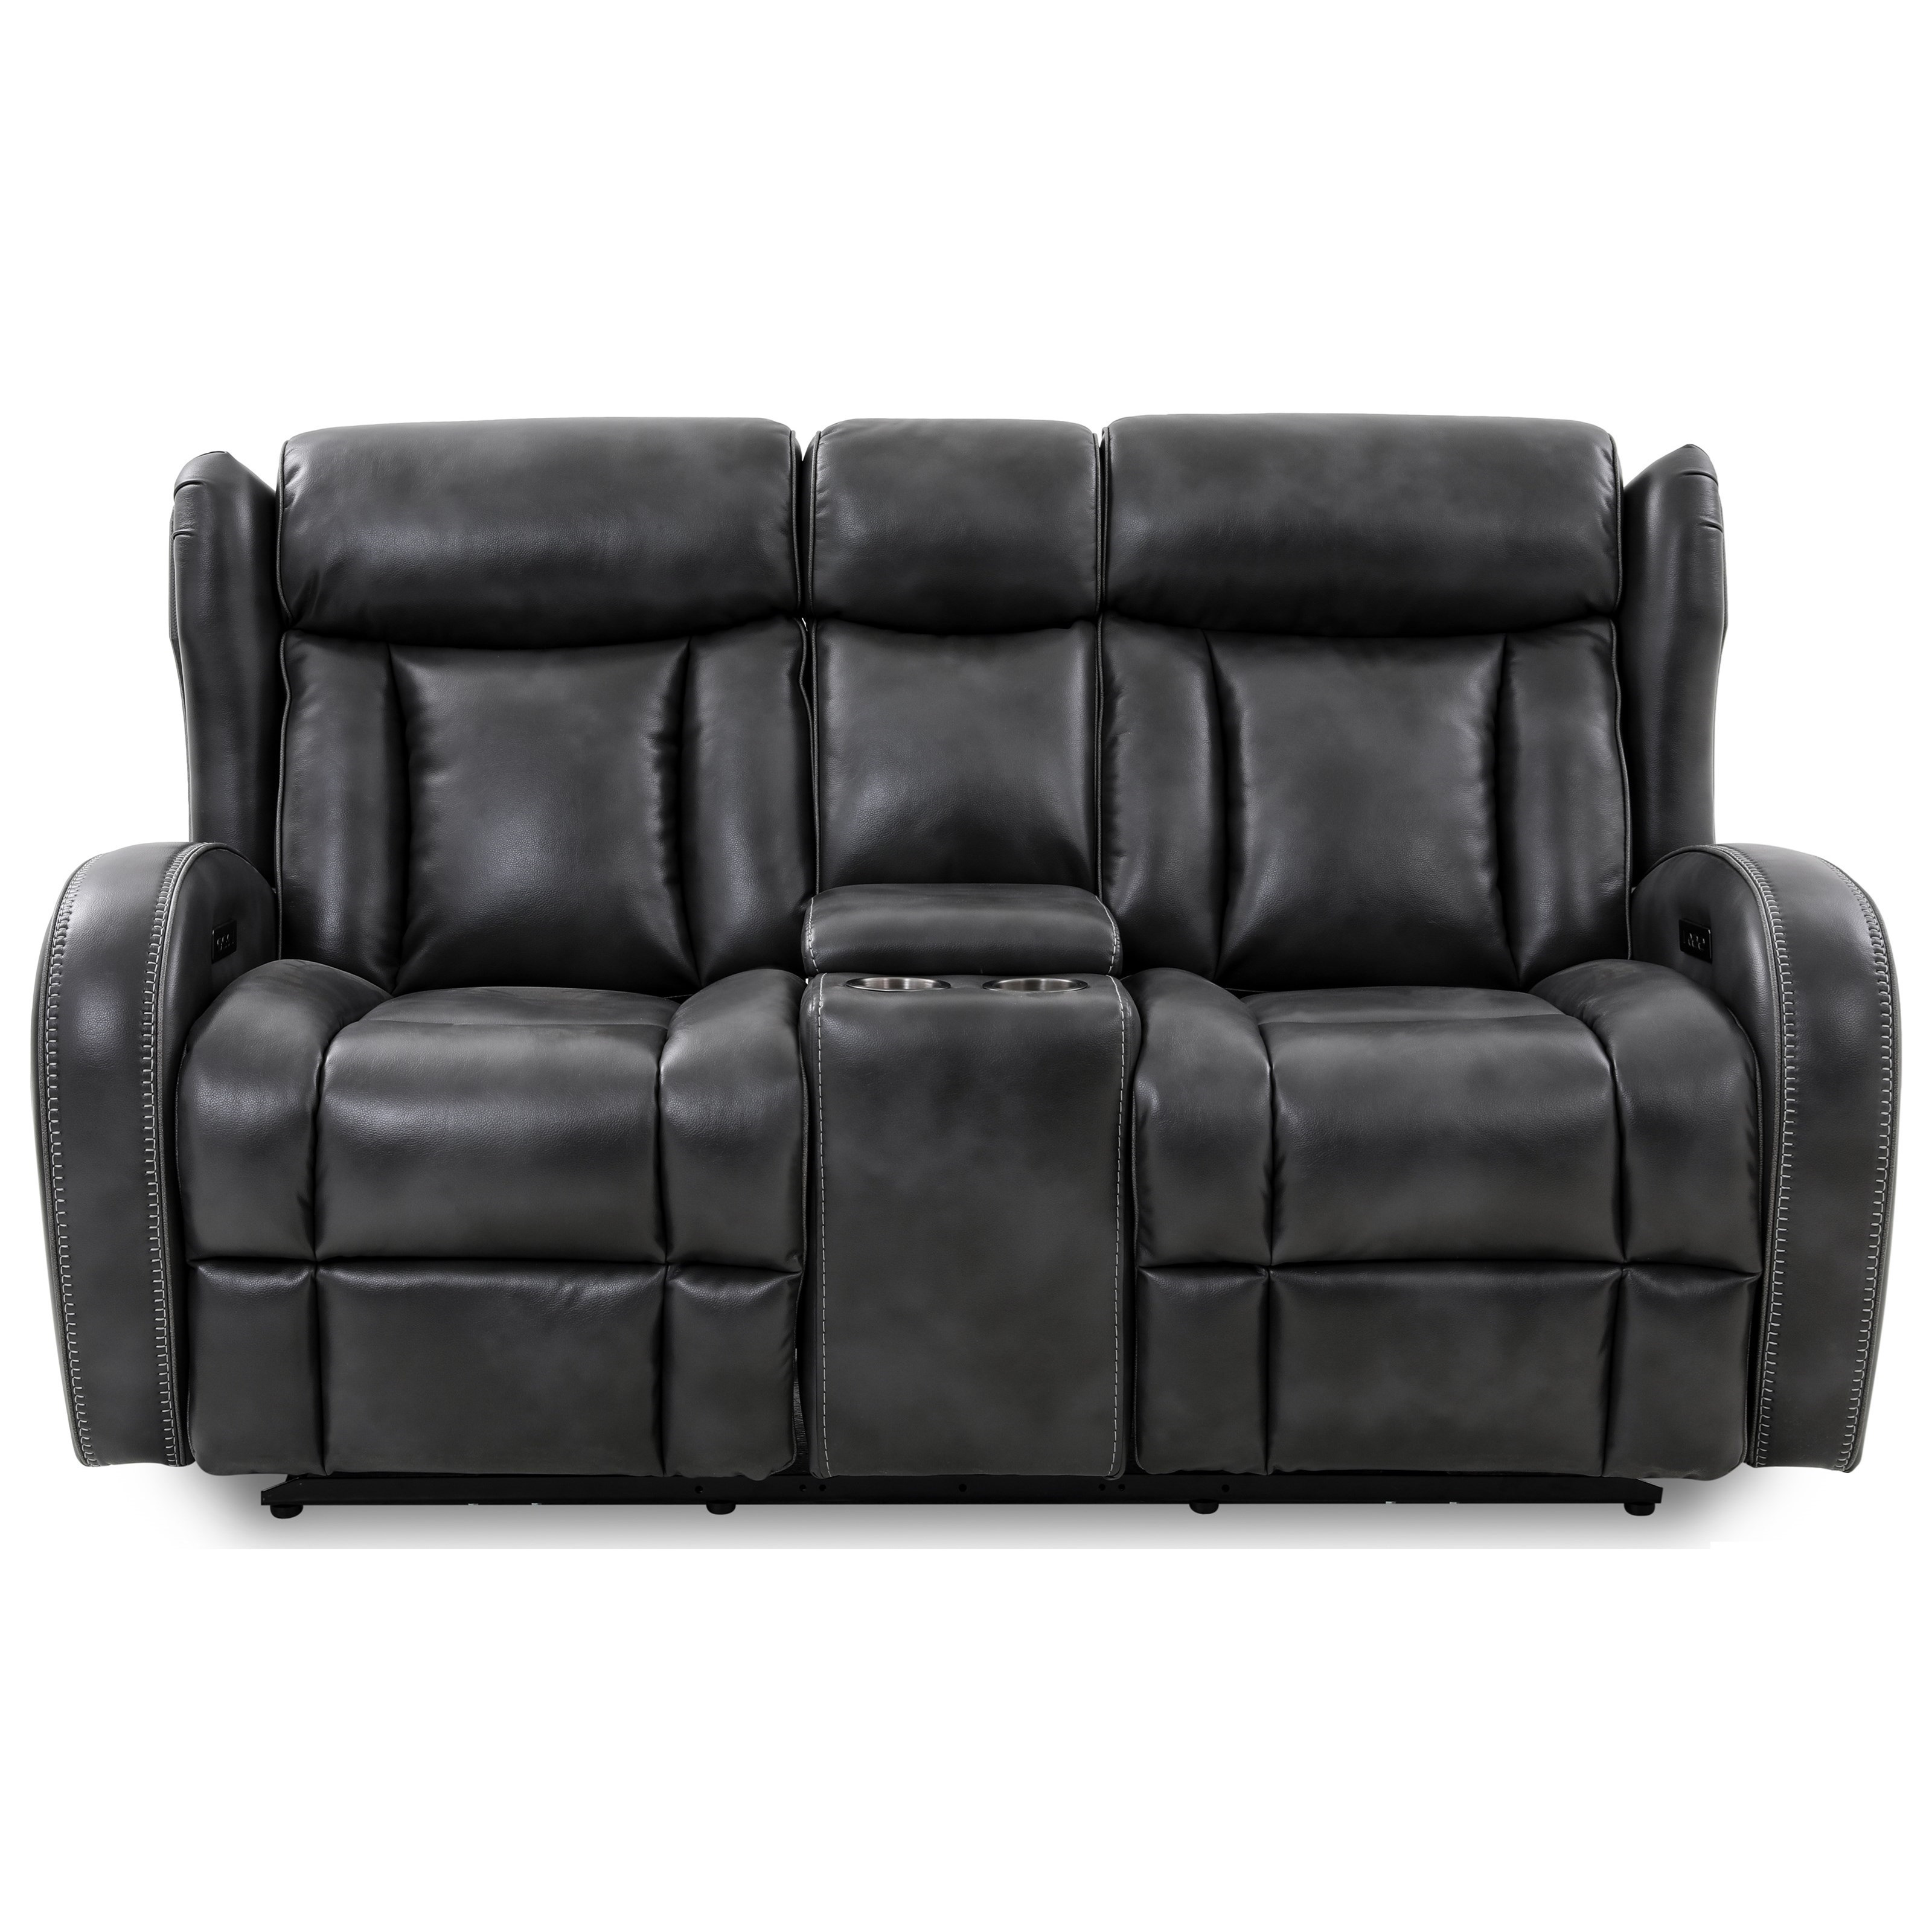 70083 Power Reclining Console Loveseat by Cheers at Household Furniture